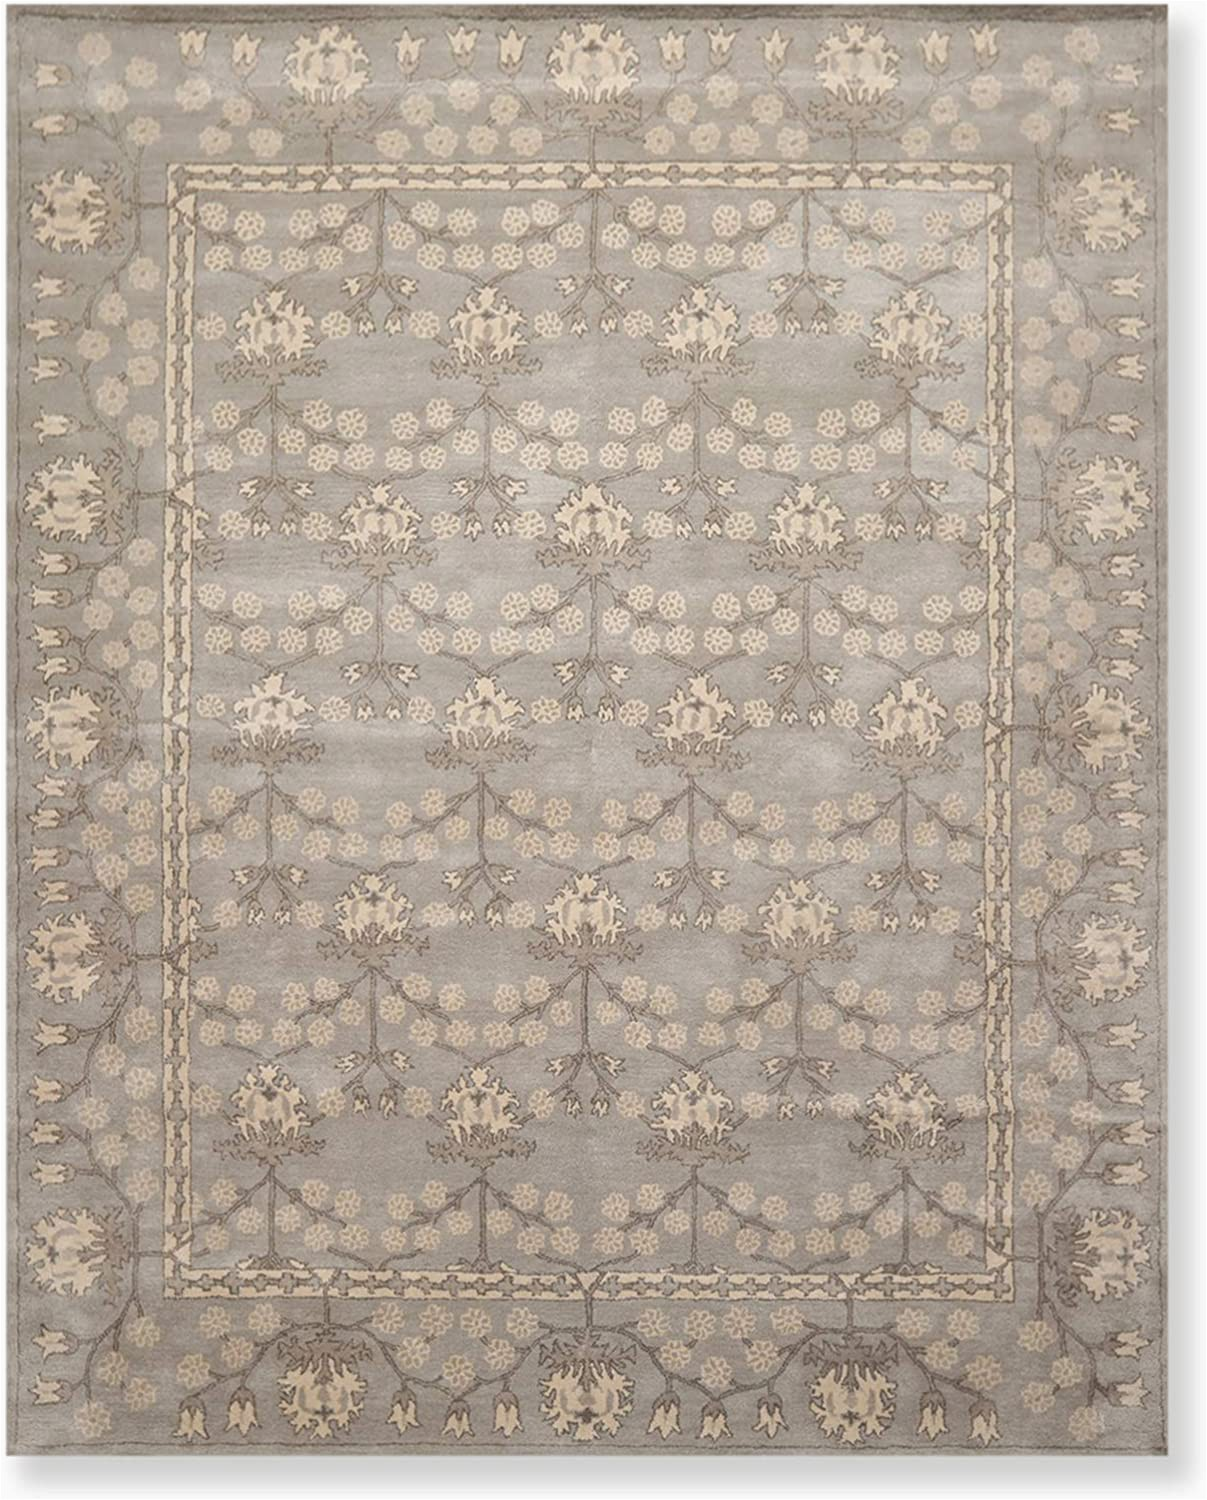 Memory Foam area Rug 8×10 8 X 10 William Morris Handmade Wool oriental area Rug 8×10 Gray